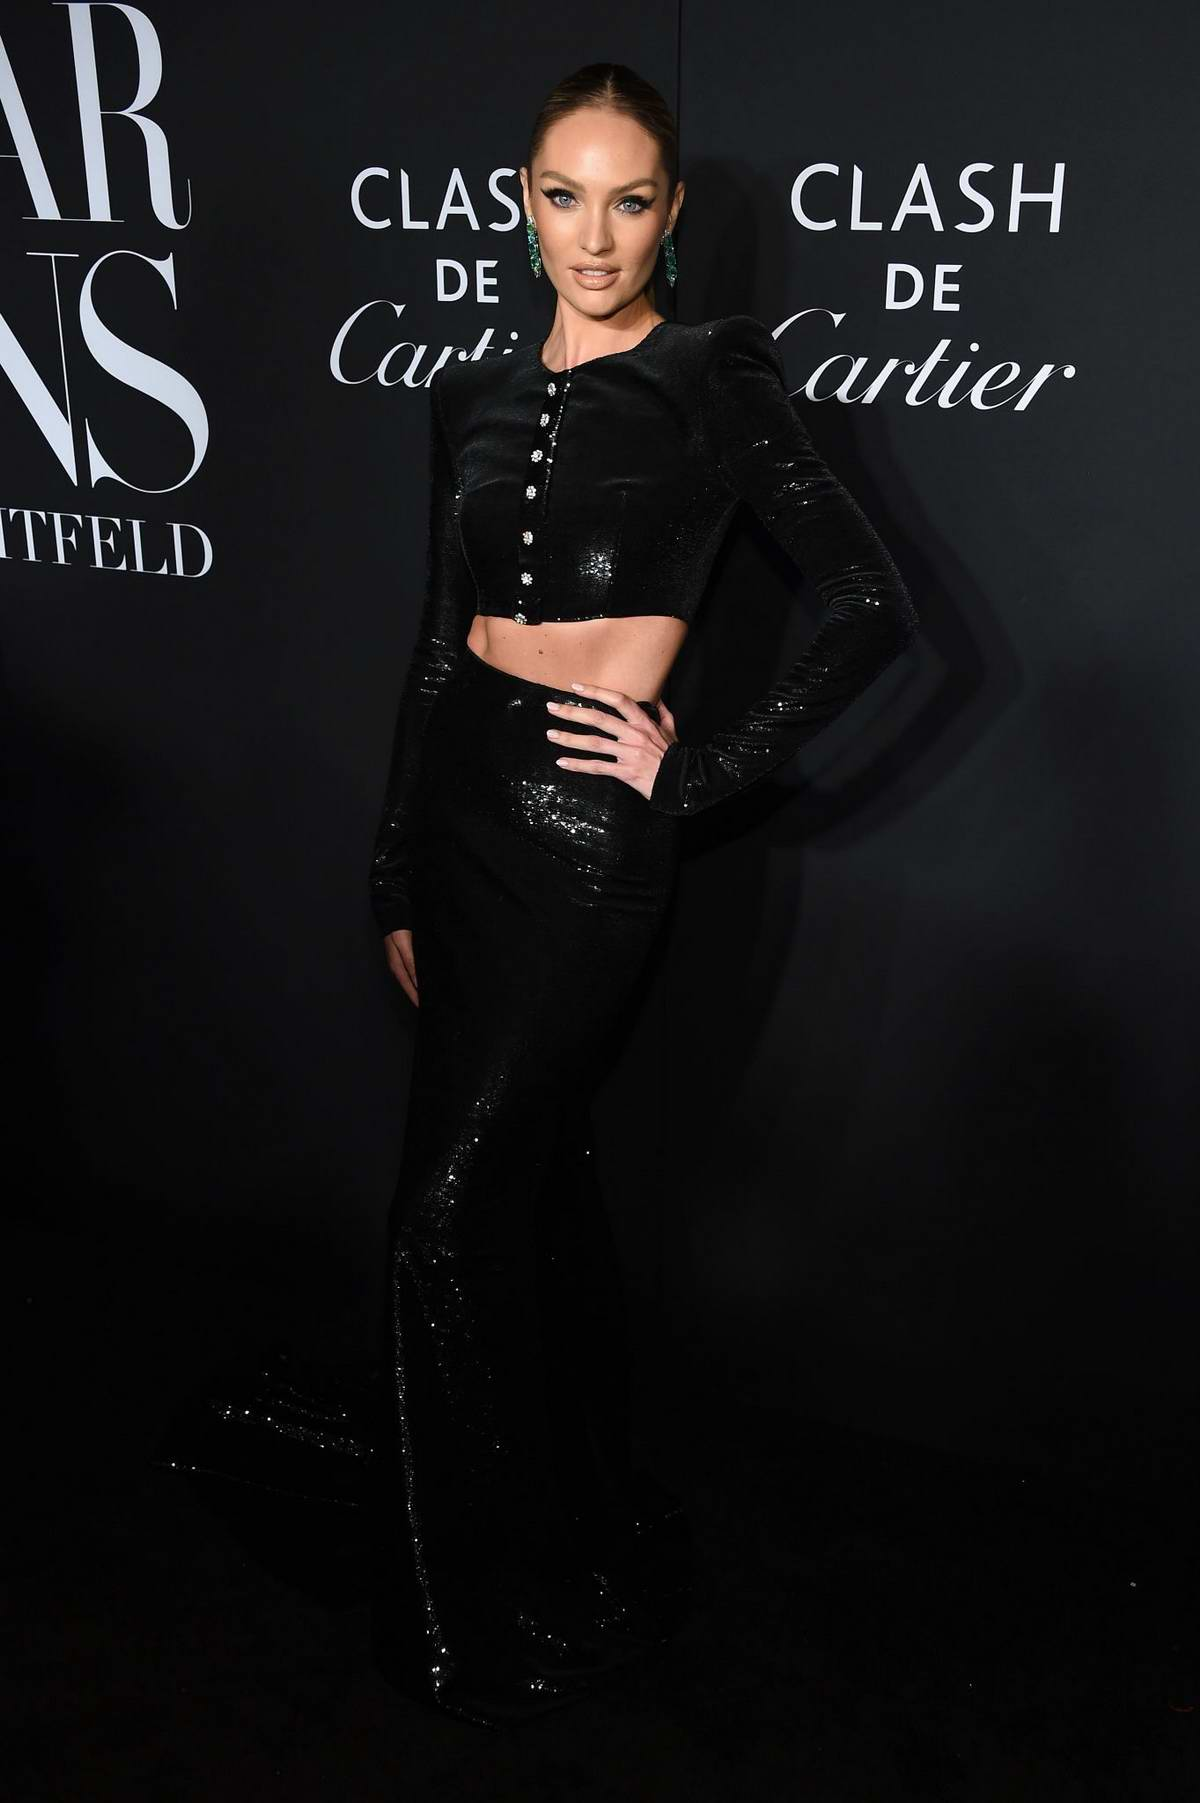 Candice Swanepoel attends the 2019 Harper's Bazaar ICONS Party at The Plaza Hotel in New York City